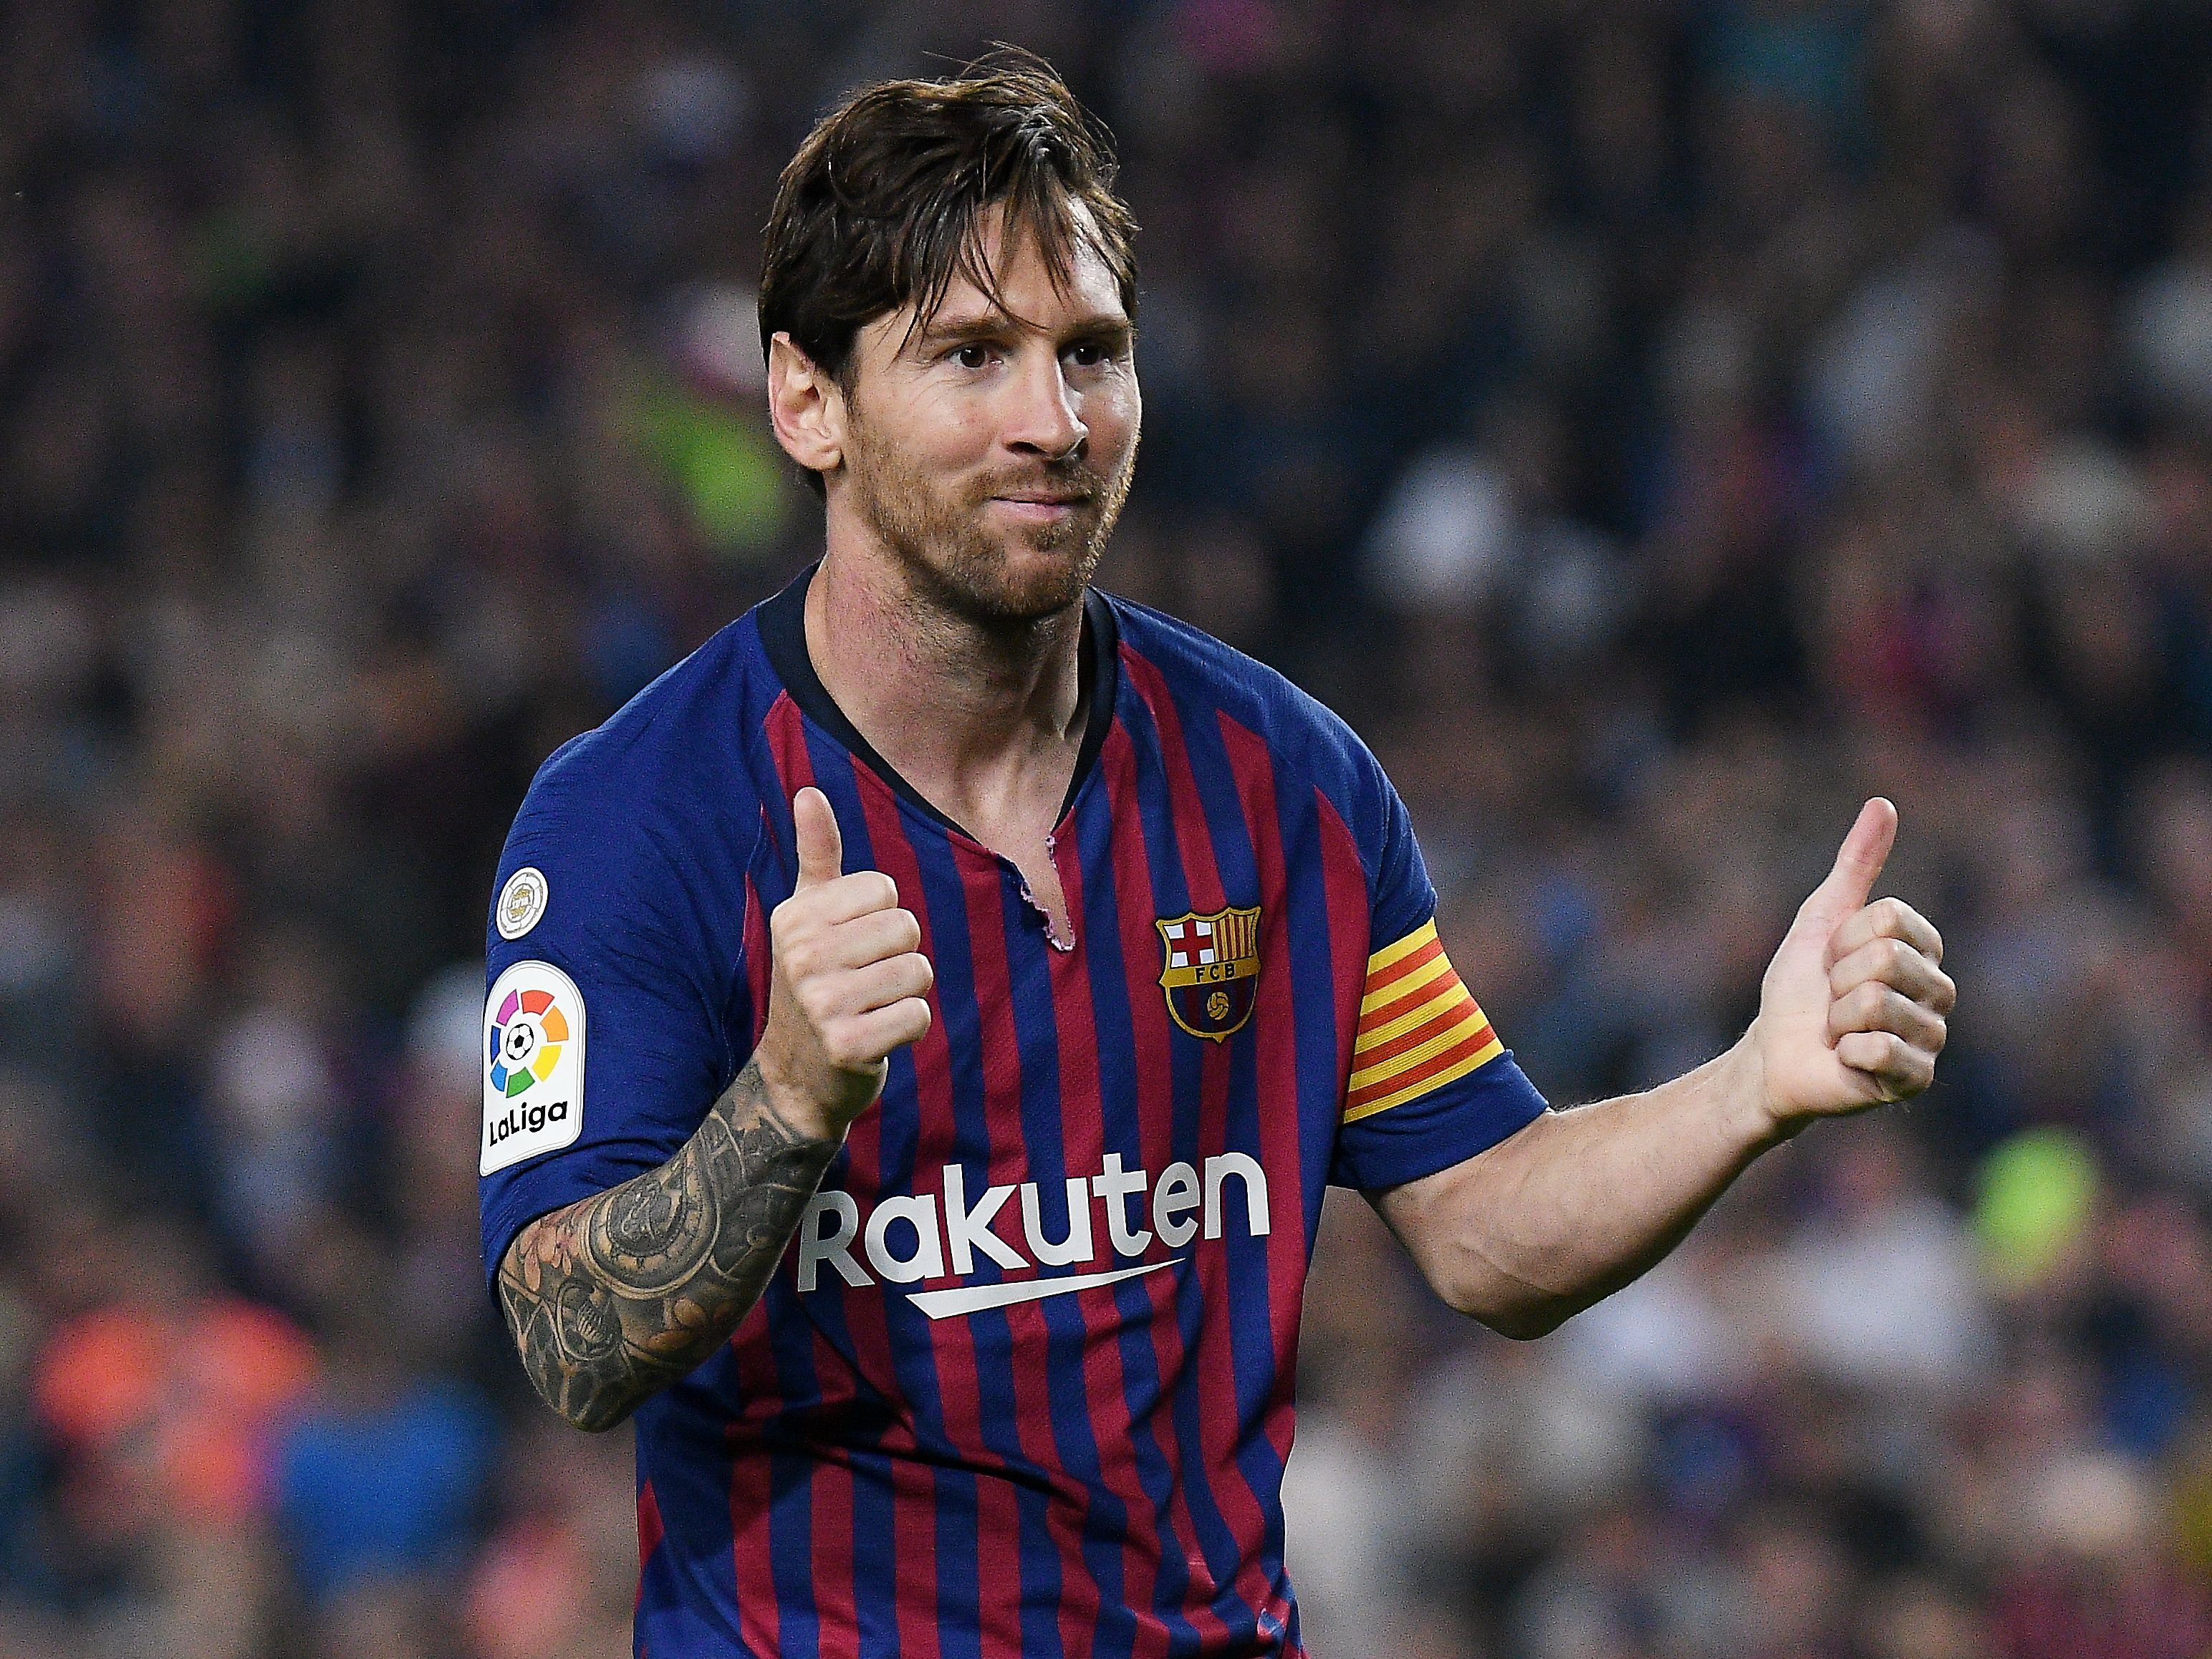 Barcelona will not risk Messi against Inter, assures Valverde